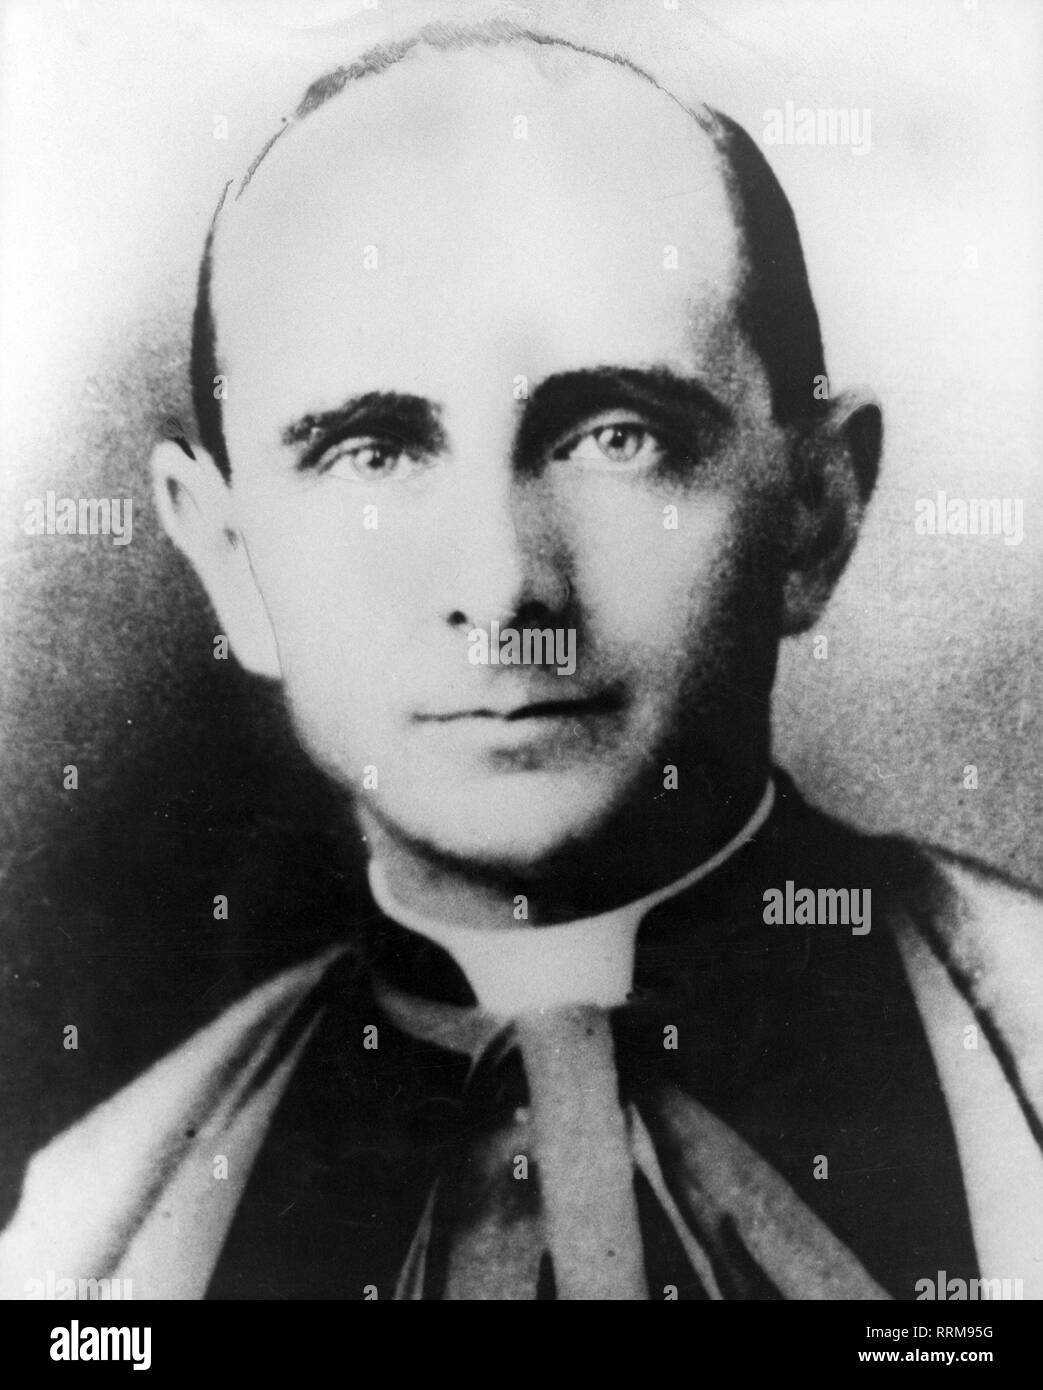 Paul VI (Giovanni Battista Montini), 26.9.1897 - 6.8.1978, Pope 21.6.1963 - 6.8.1978, portrait, on day of his elevation to cardinal, 15.12.1958, Additional-Rights-Clearance-Info-Not-Available - Stock Image